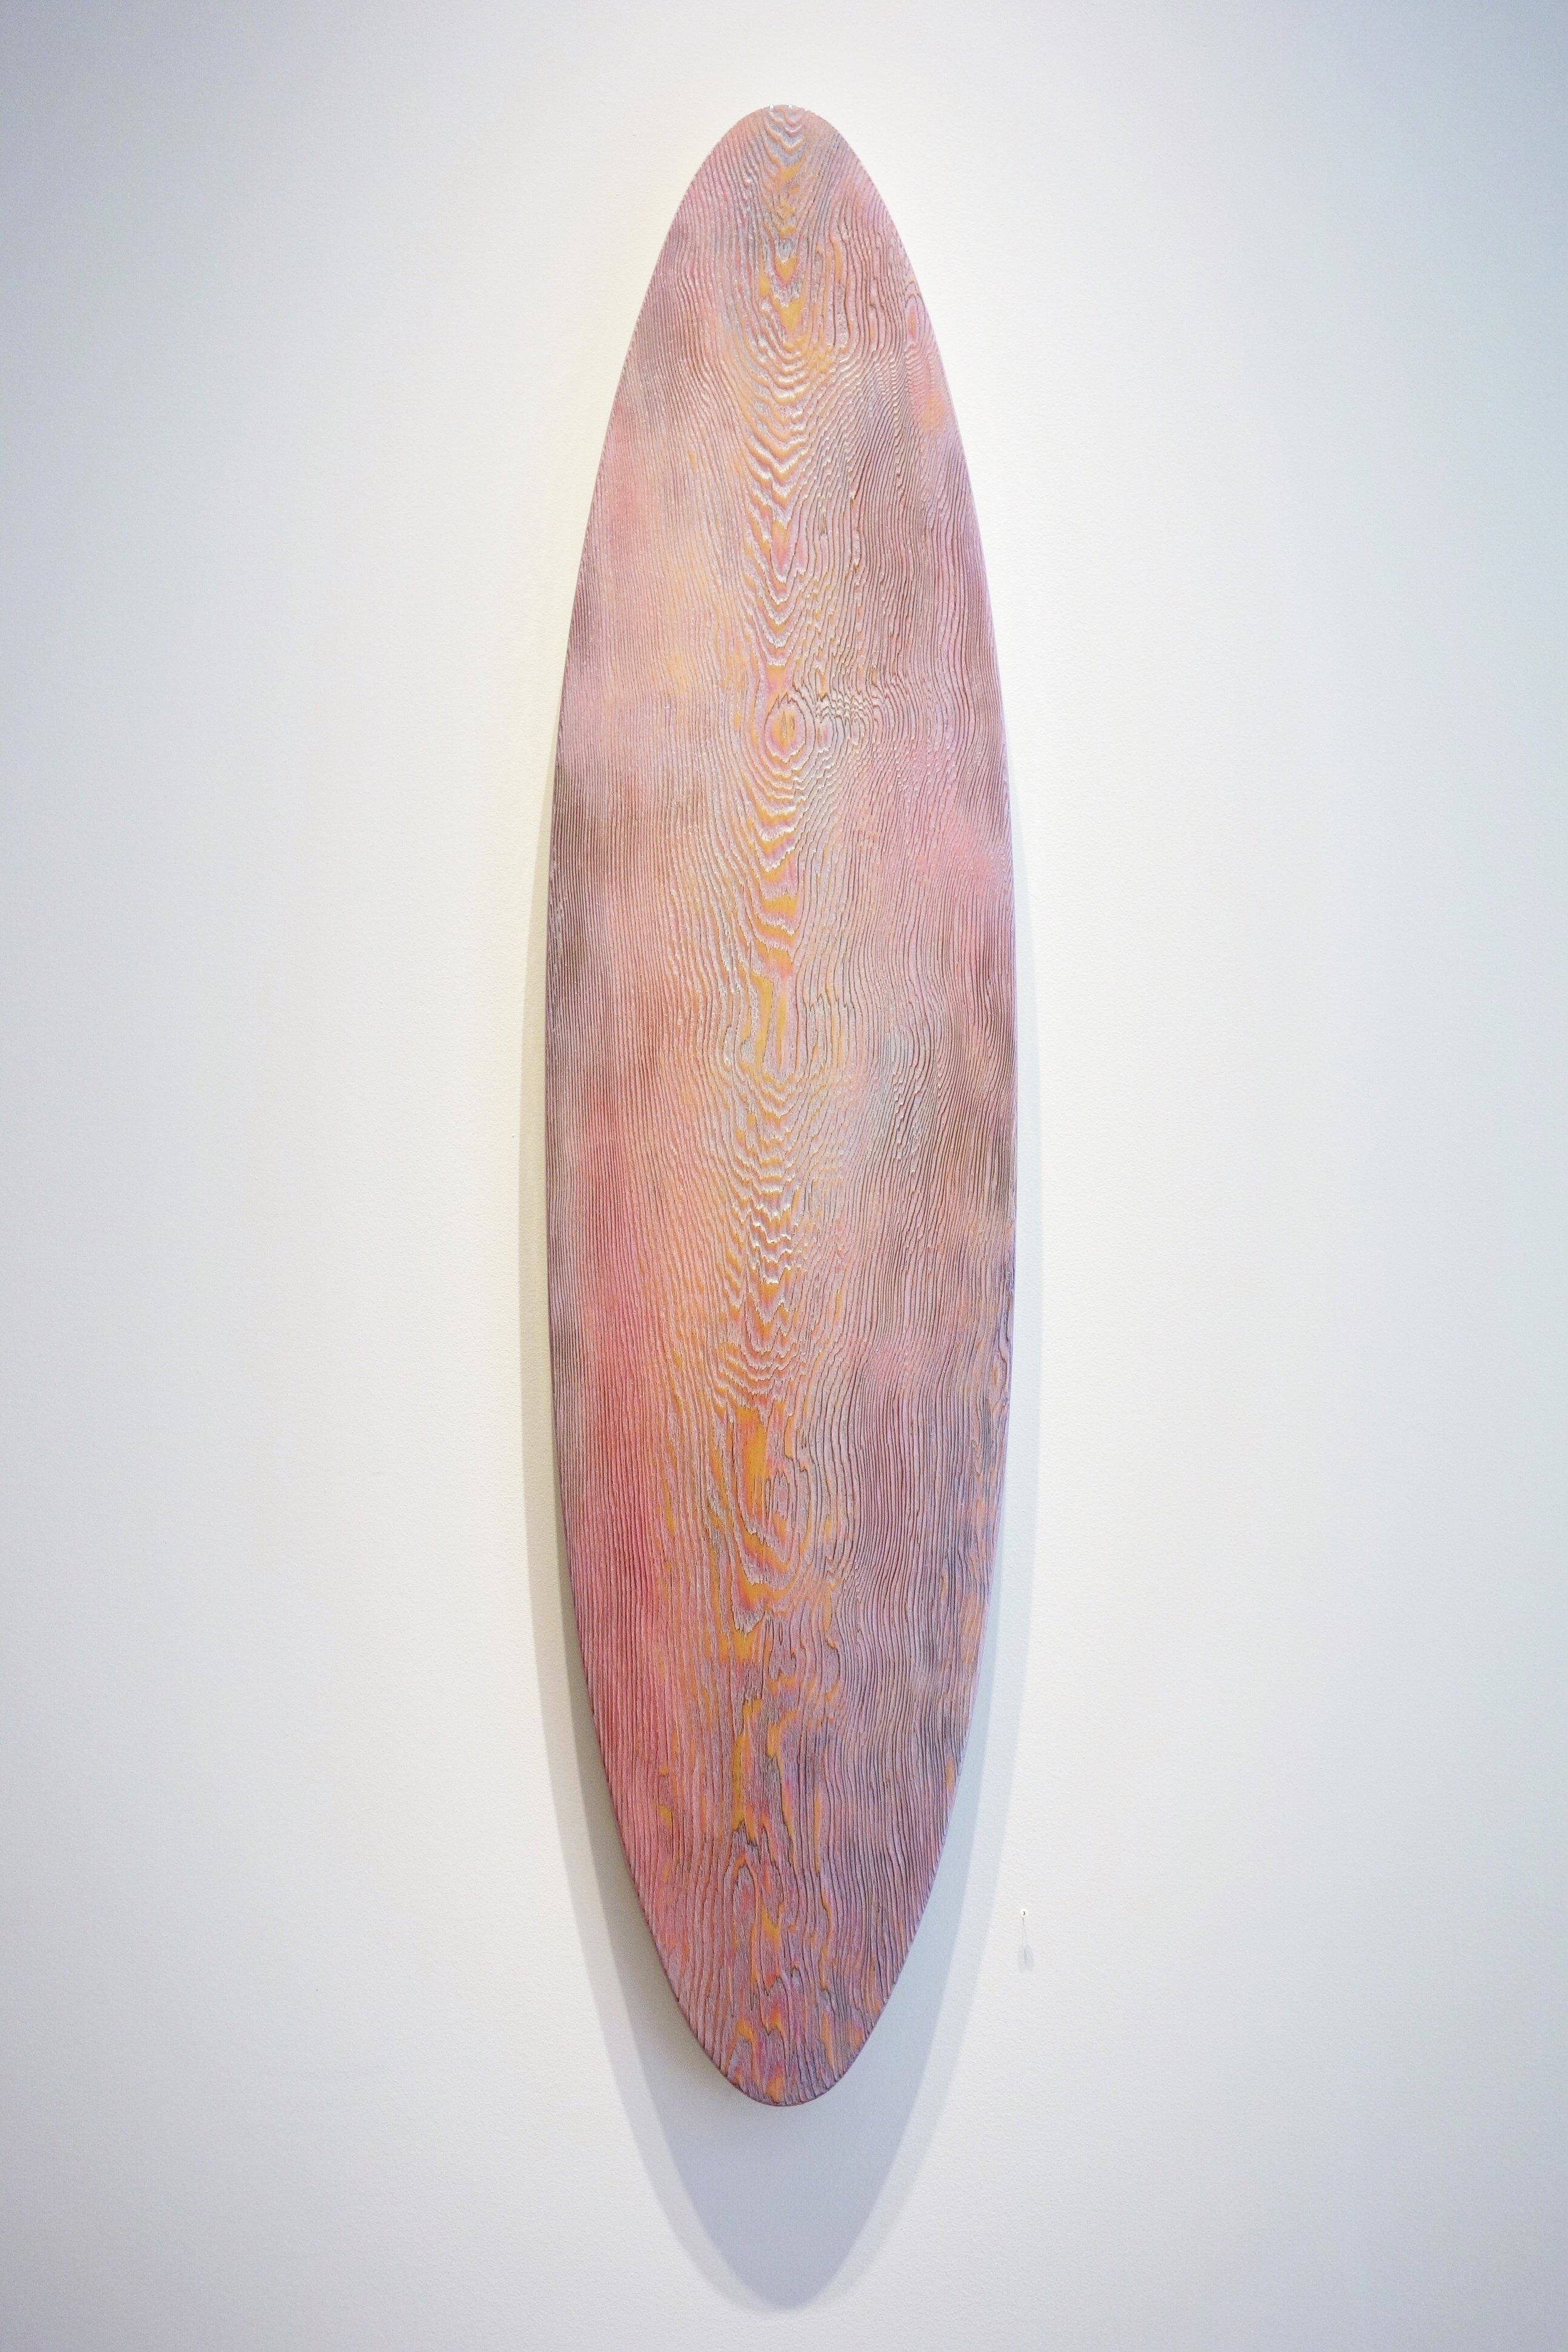 "Justen Ladda, pink and gold mirror, 2017, 46"" x 11"", mixed media on red cedar"